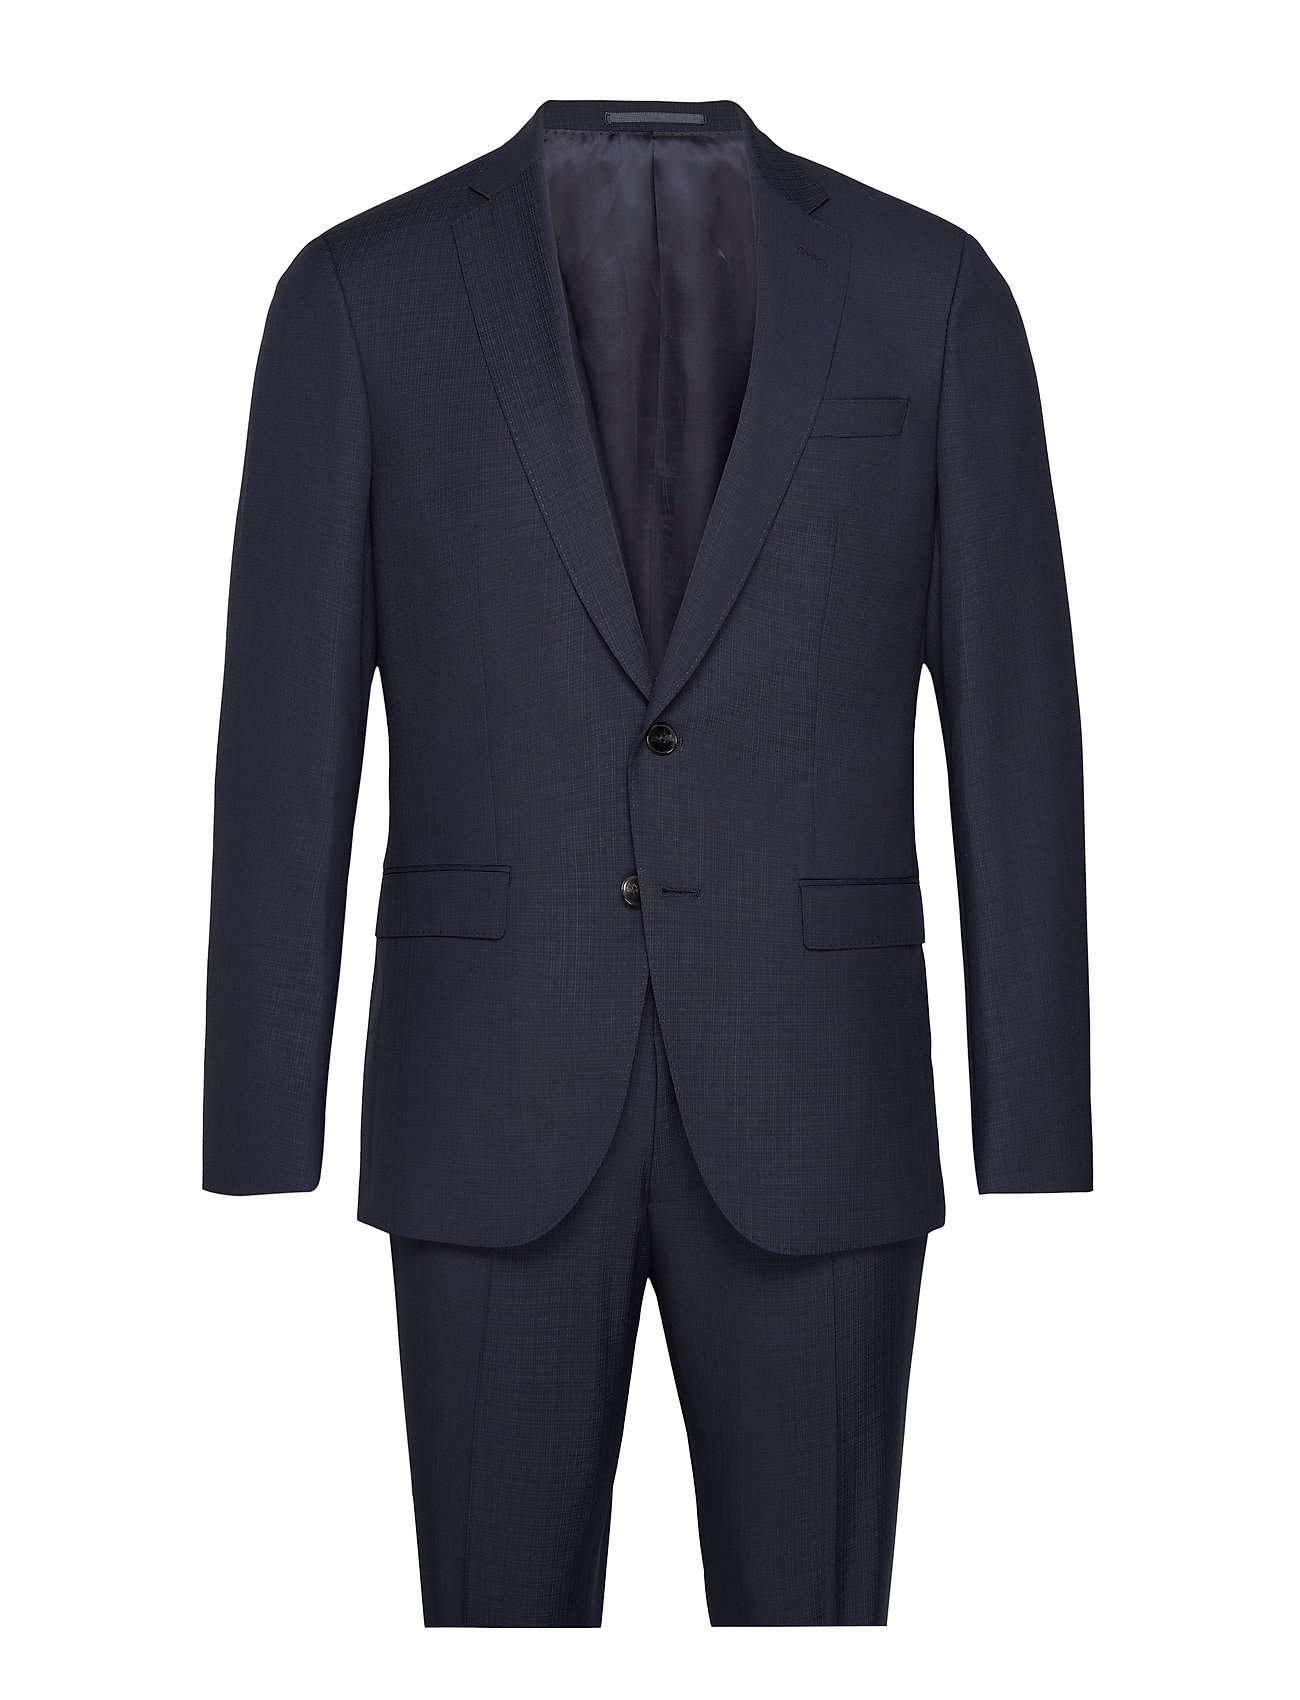 BOSS Business Wear Huge6/Genius5 - DARK BLUE